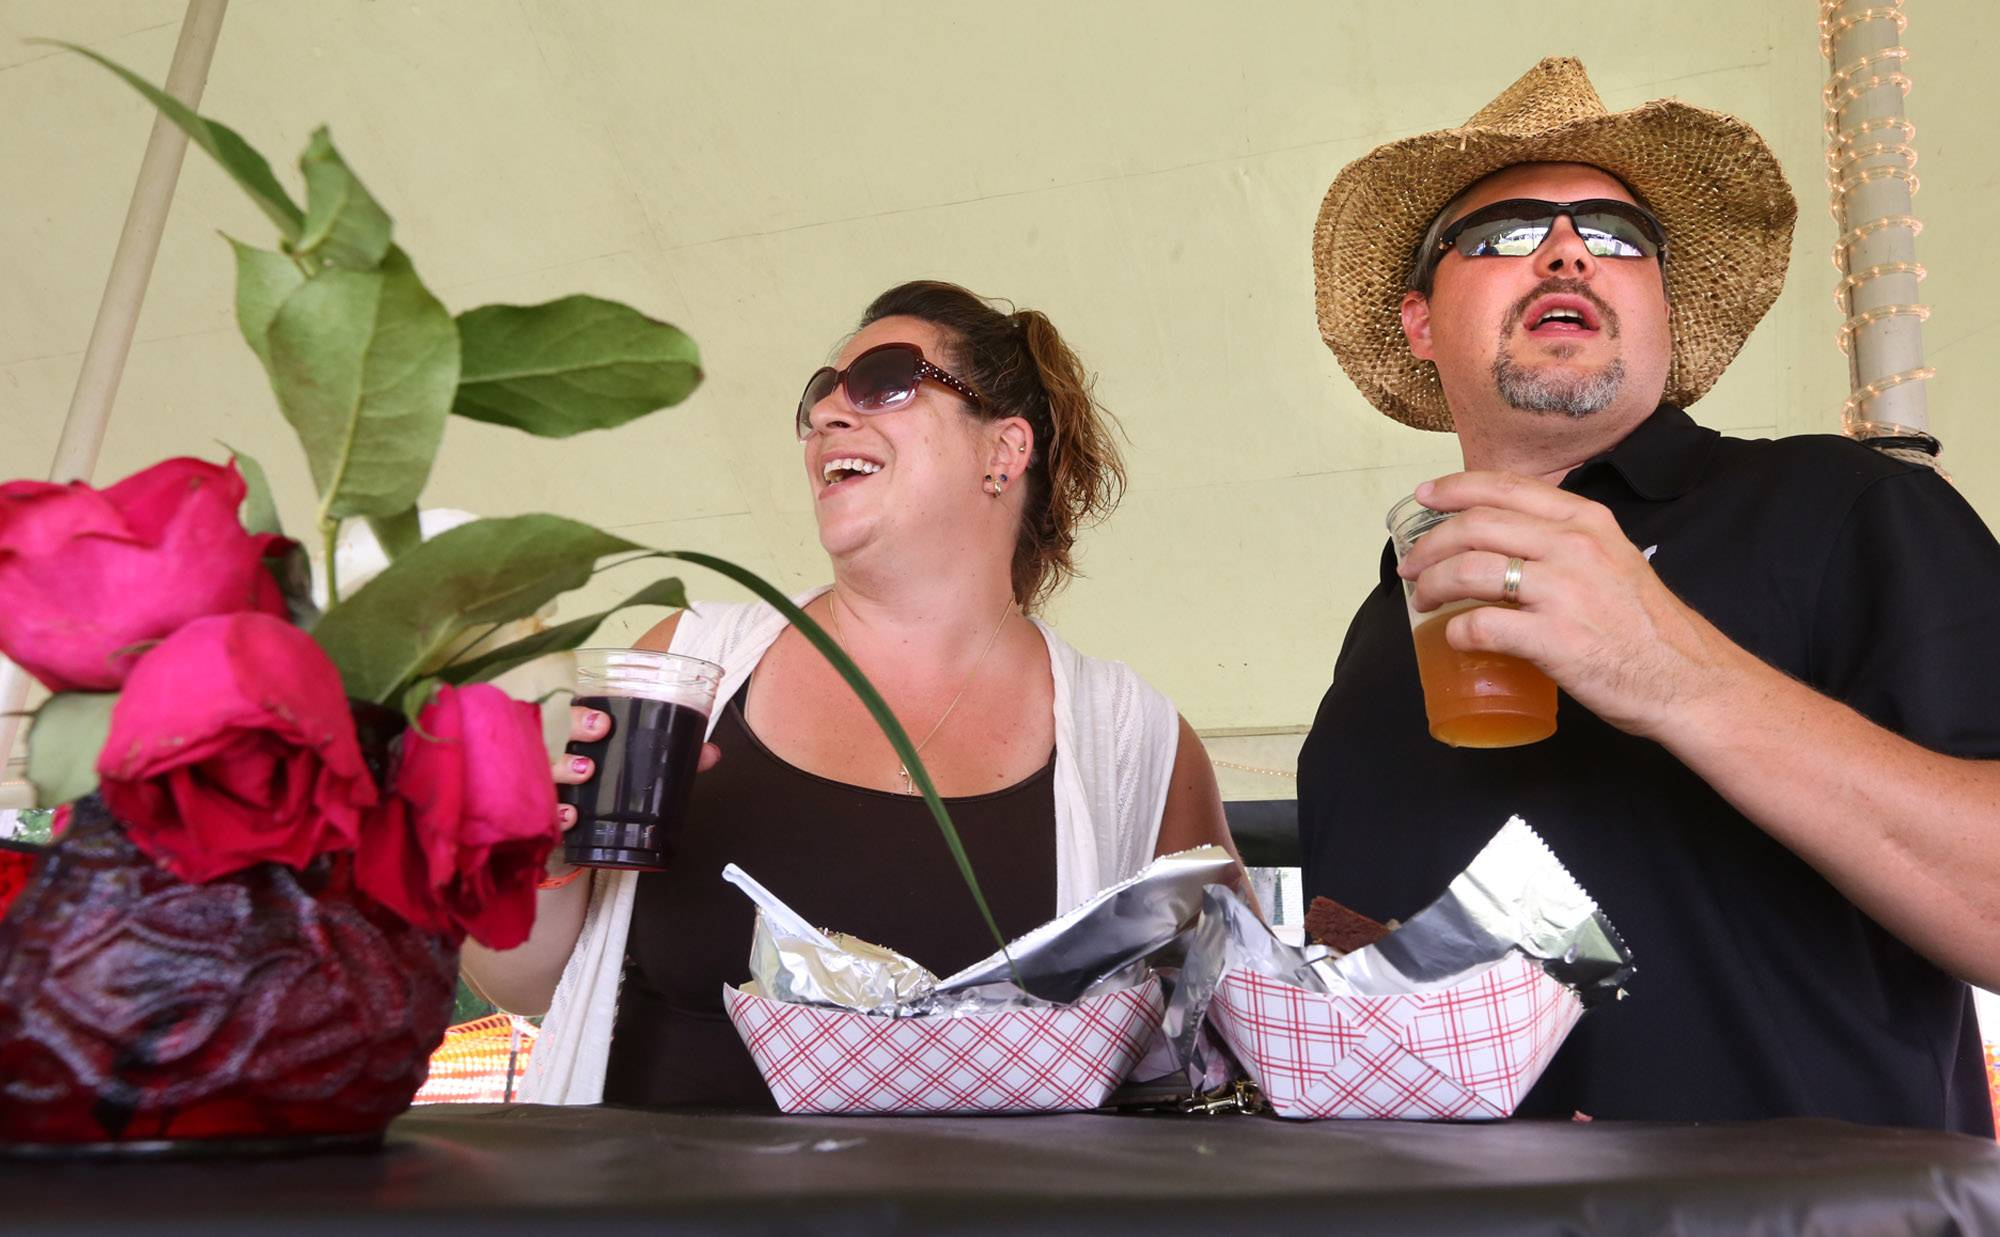 Kelly Englum of Elgin and her husband John, who works in Wauconda, enjoy the carnival and main stage from inside the Bliss Wine and Gifts of Wauconda wine tasting tent at Wauconda Fest while having a glass of sangria and a Phat Chance blonde ale during the festival's third day Saturday.